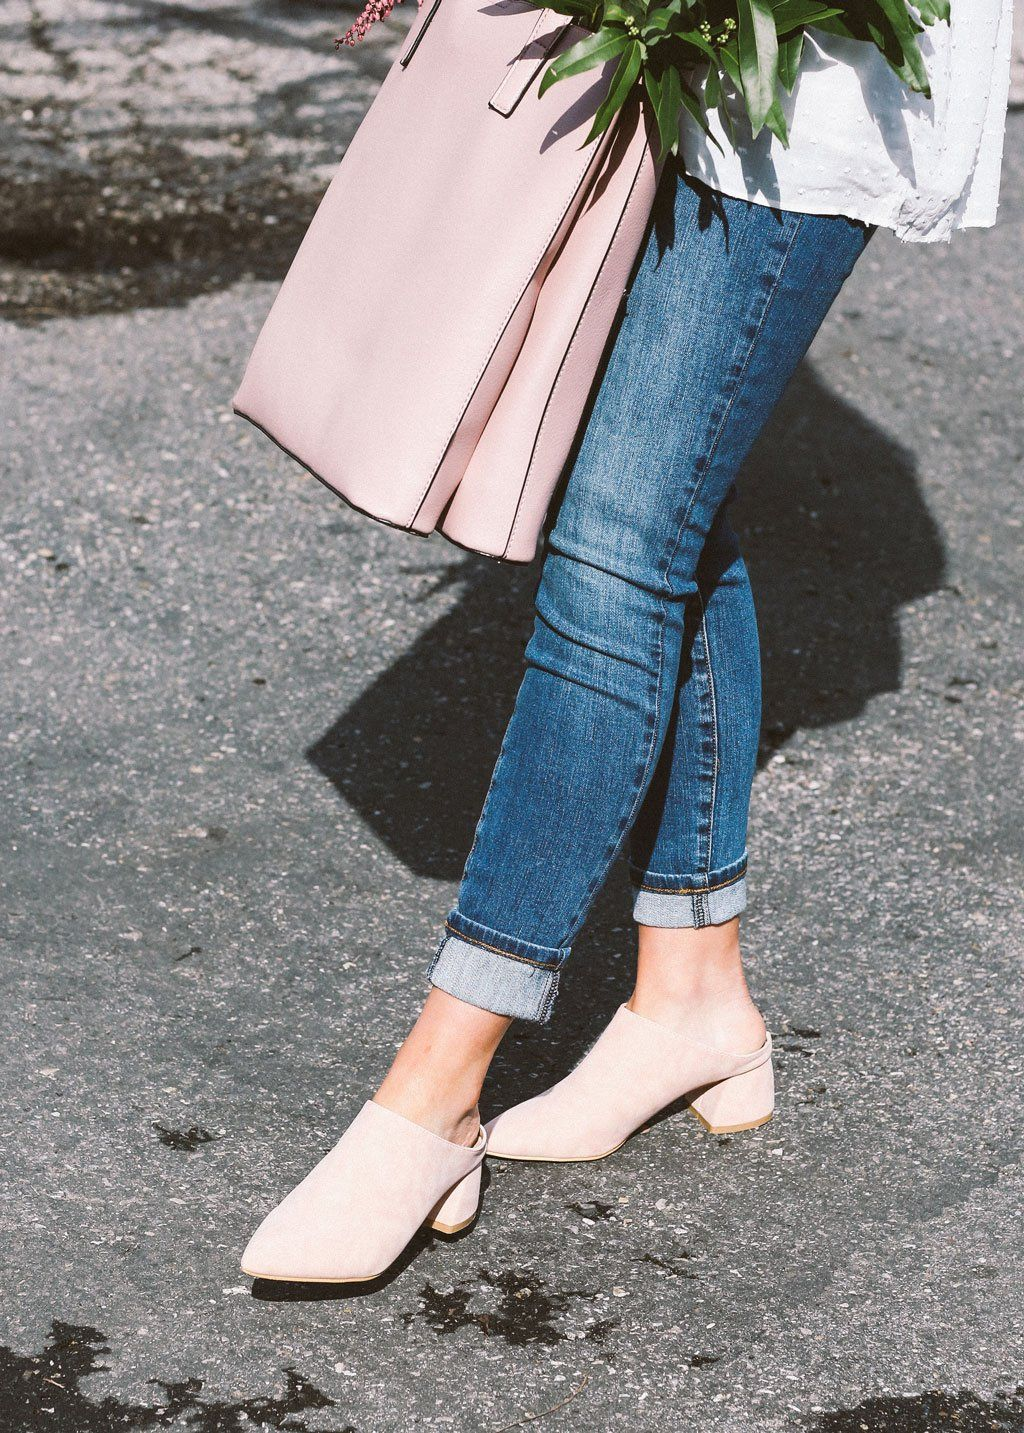 Mallory Mule in Blush | Outfits, Fashion, Clothes for women